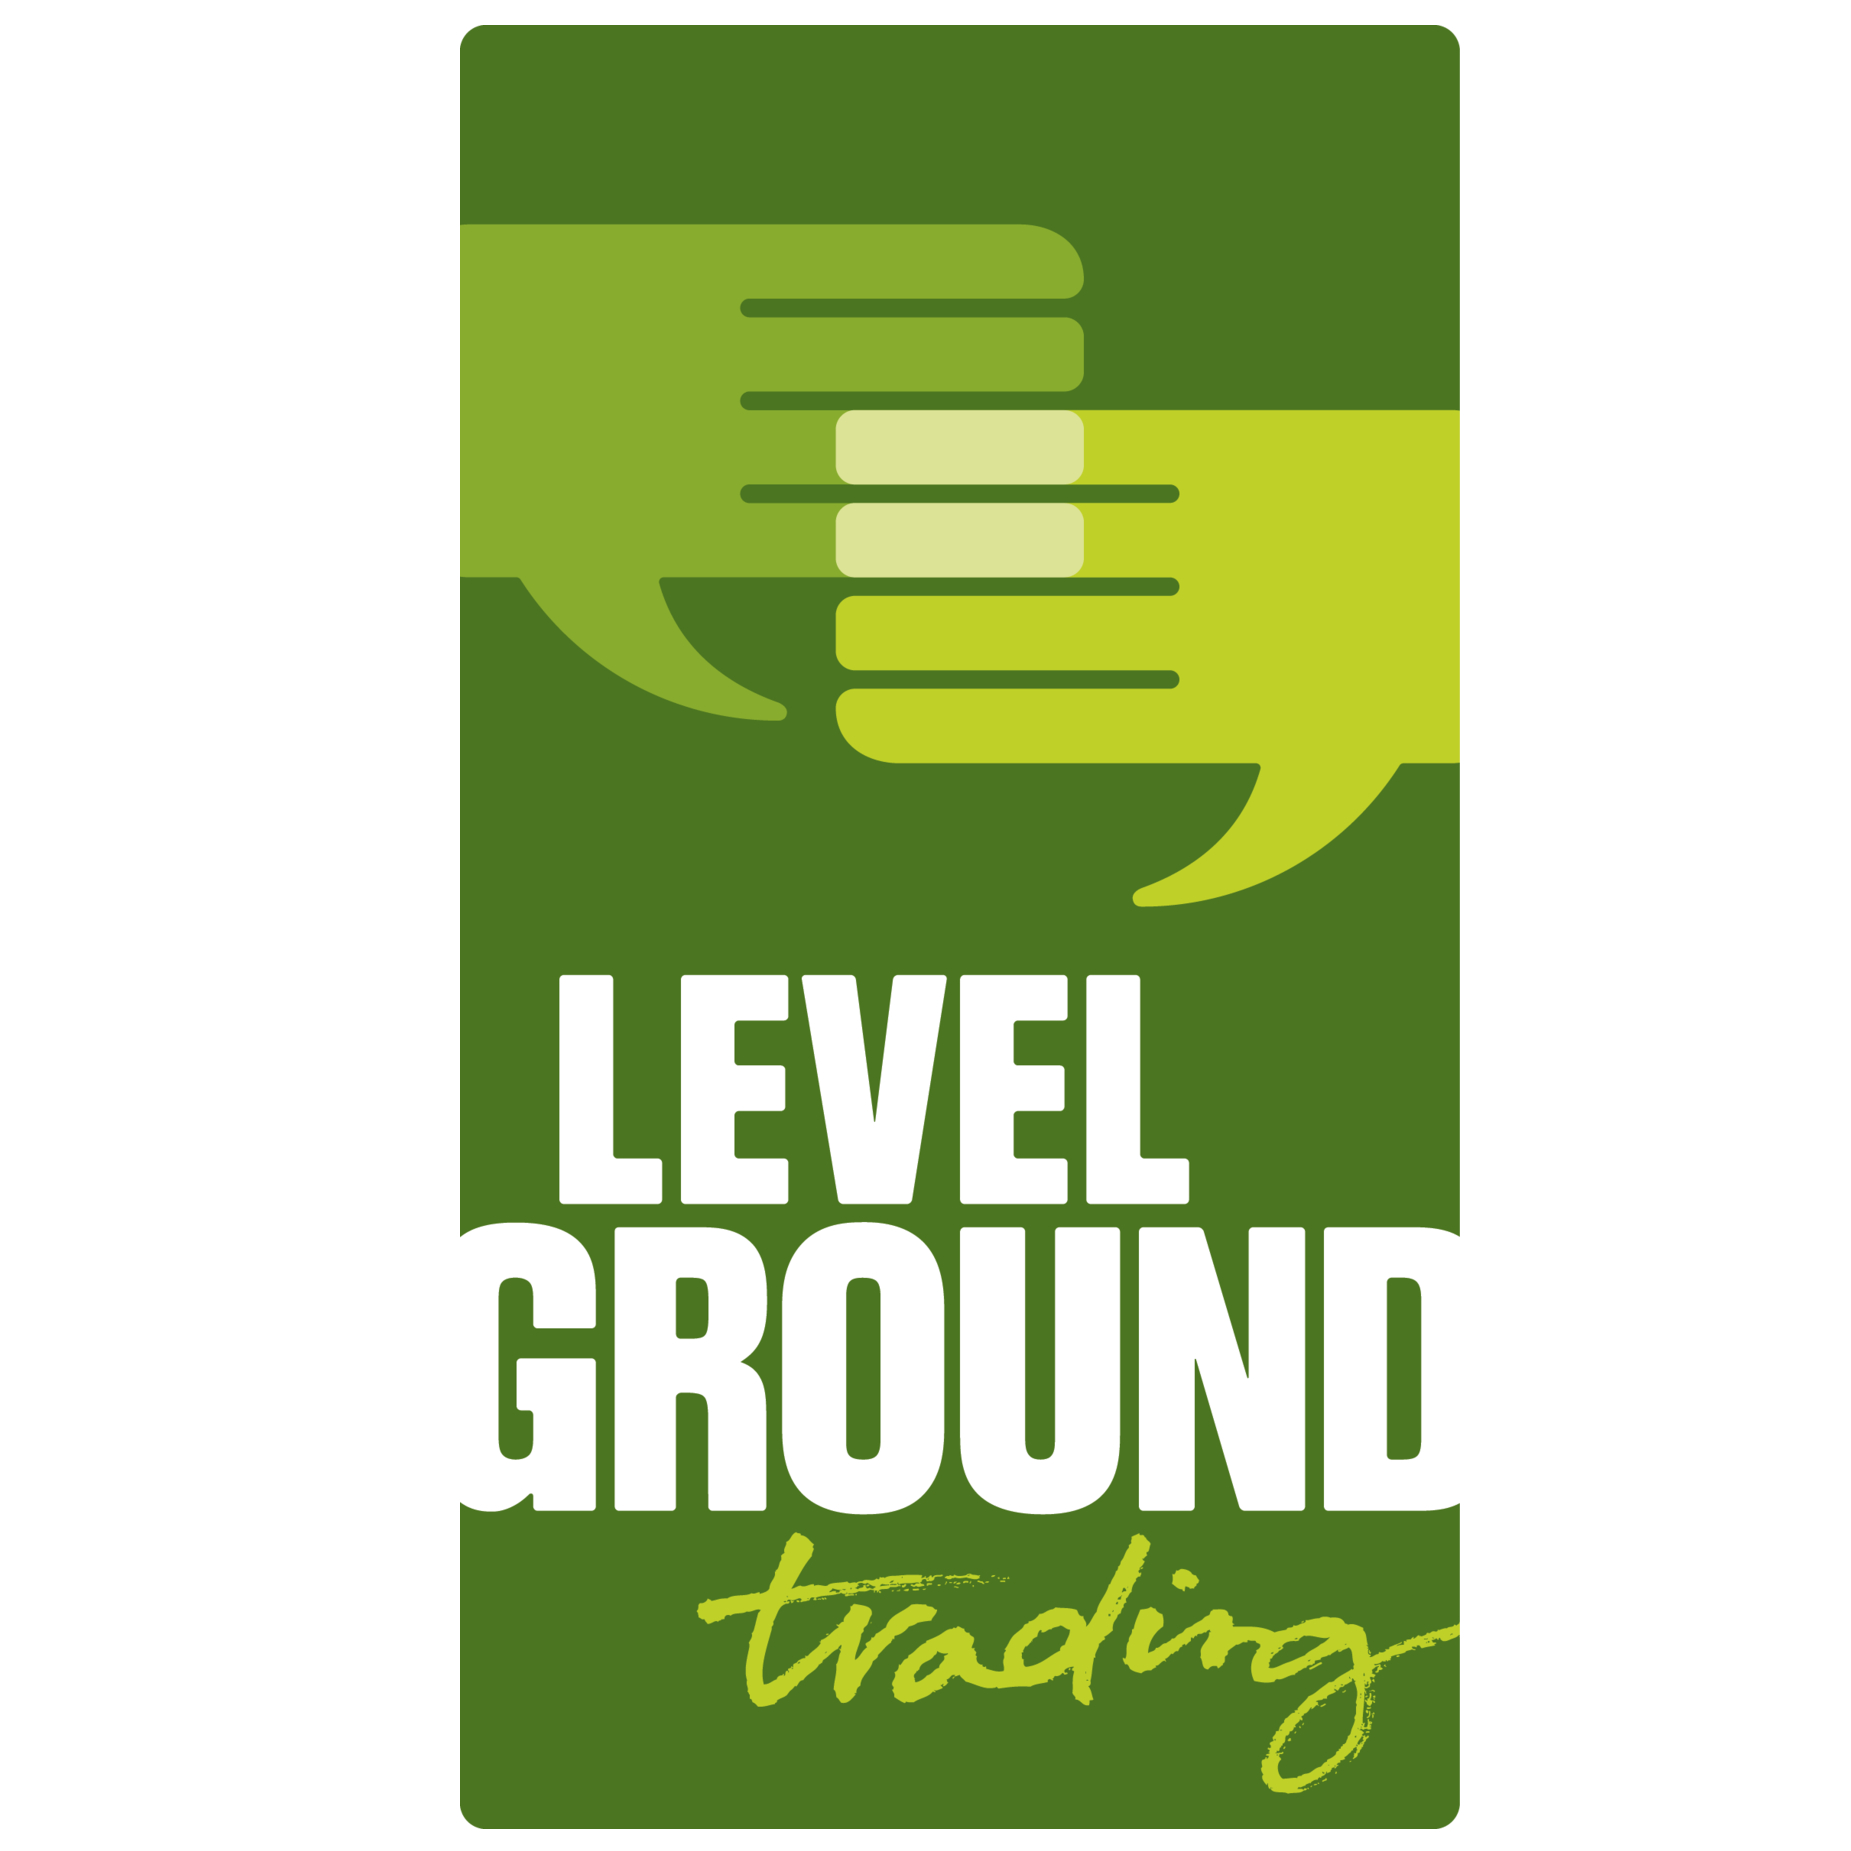 Level Ground Trading Ltd